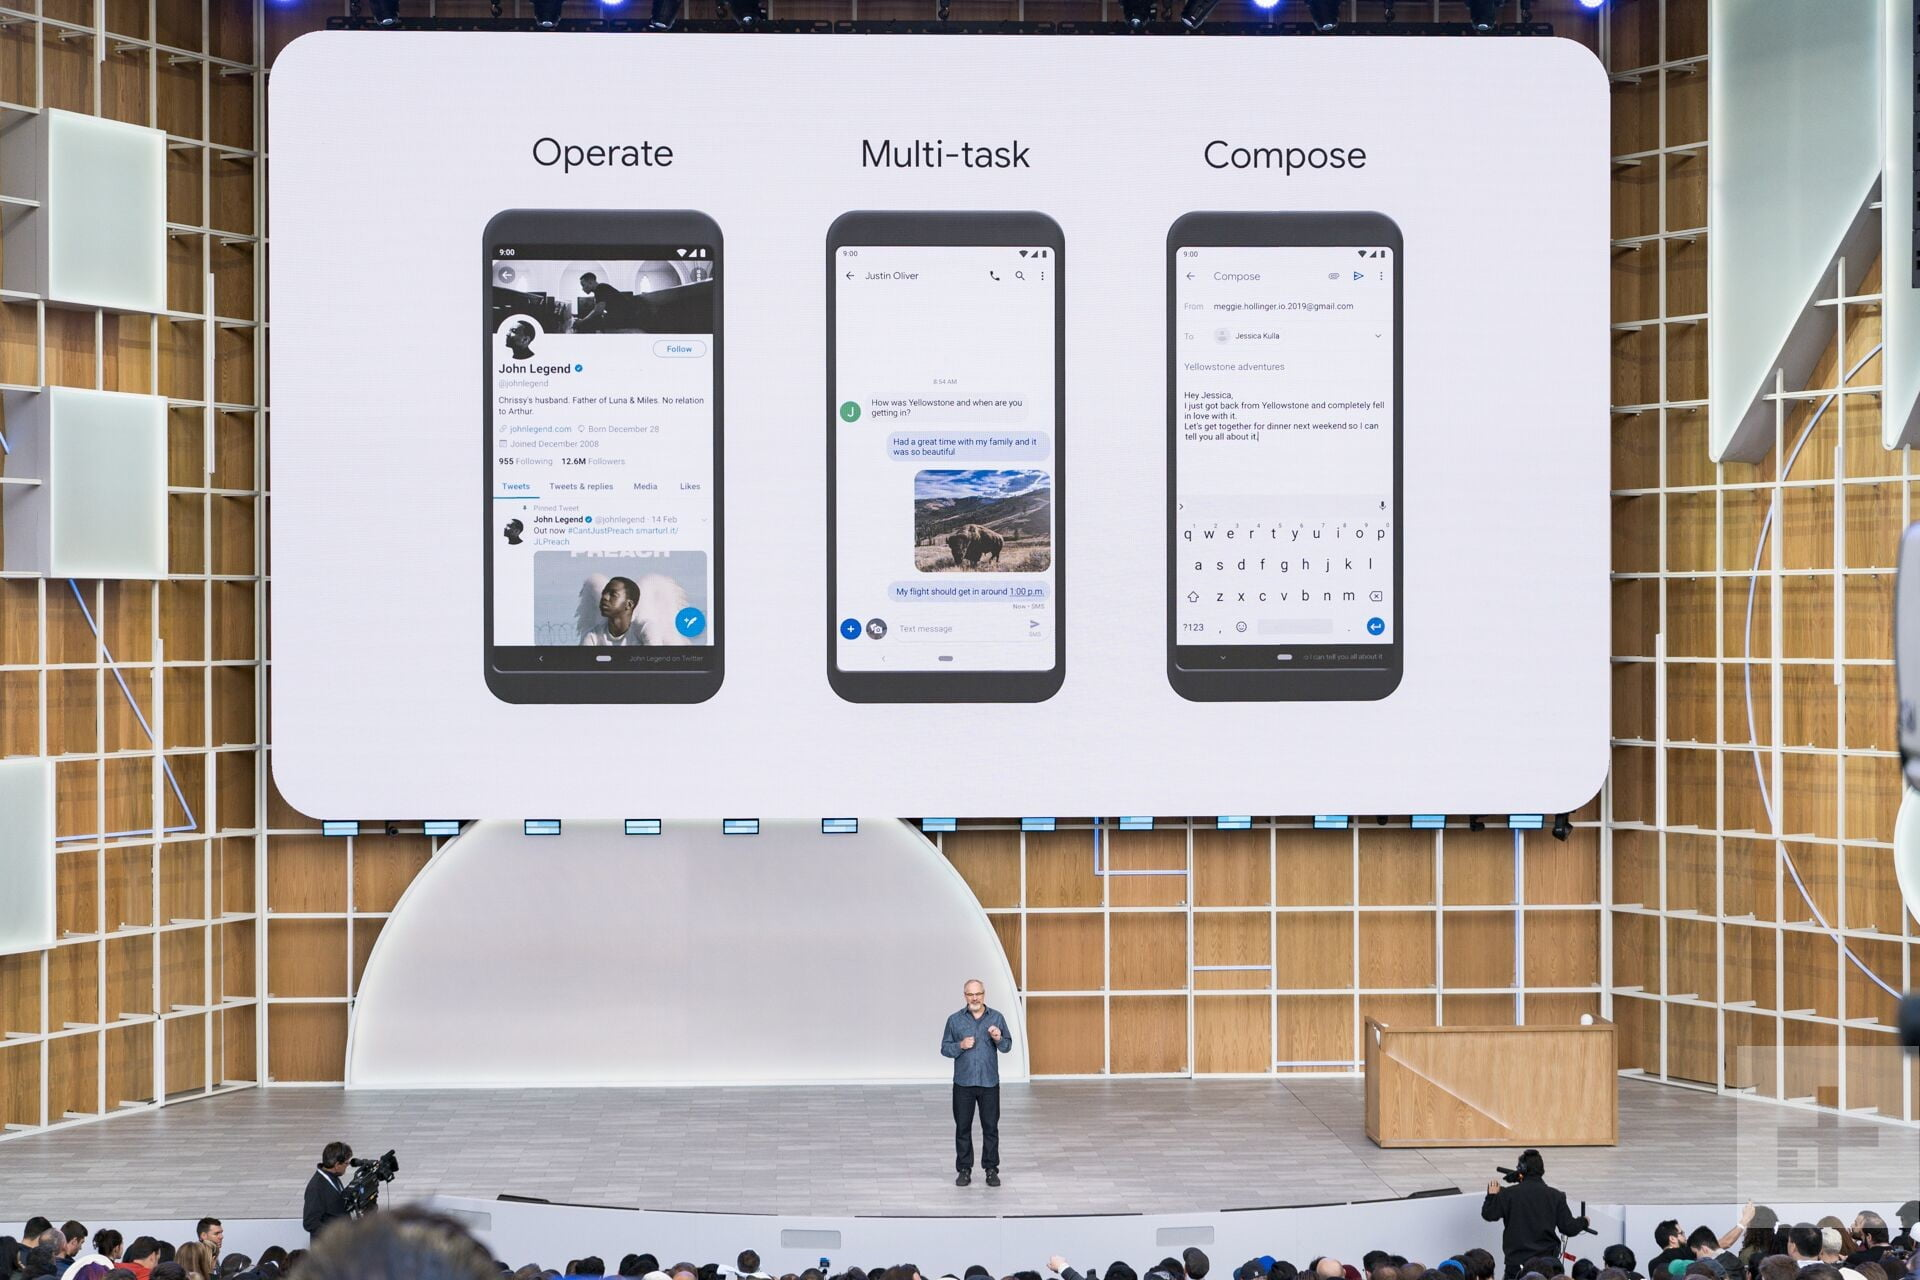 Next-Generation Google Assistant Works Locally on Phones